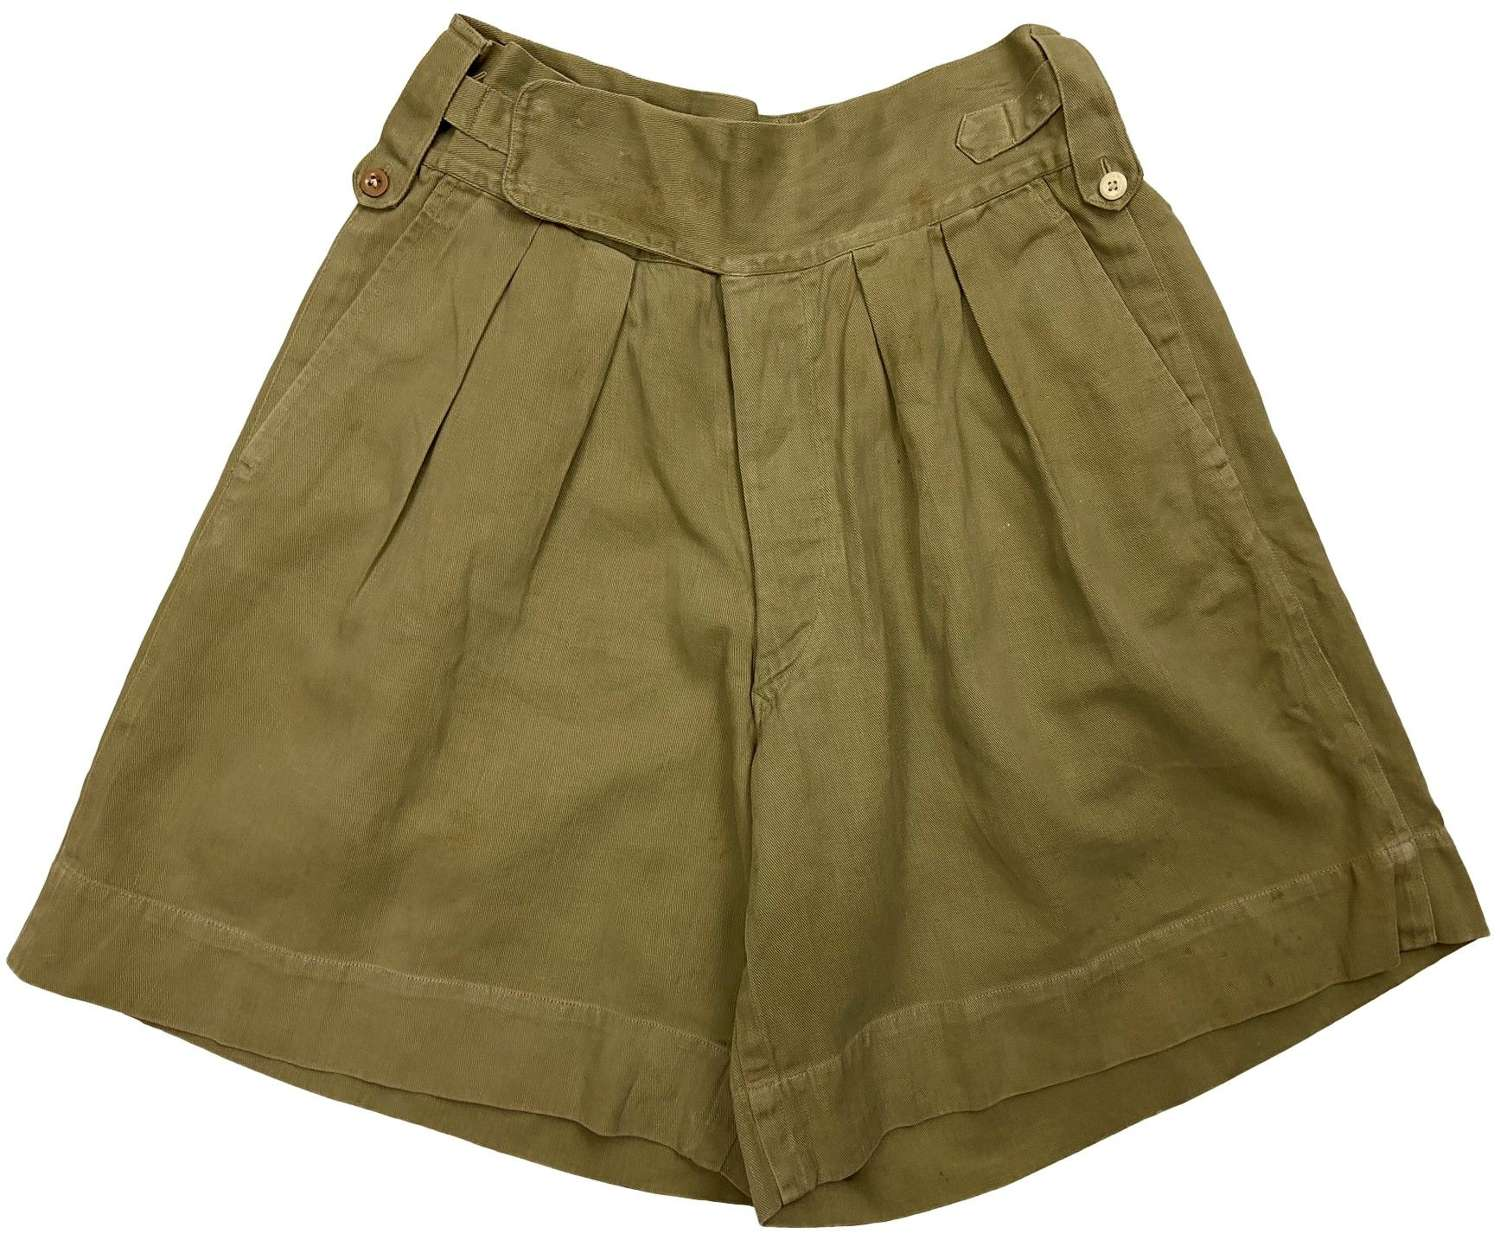 Original 1940s Khaki Drill Shorts - Size 28